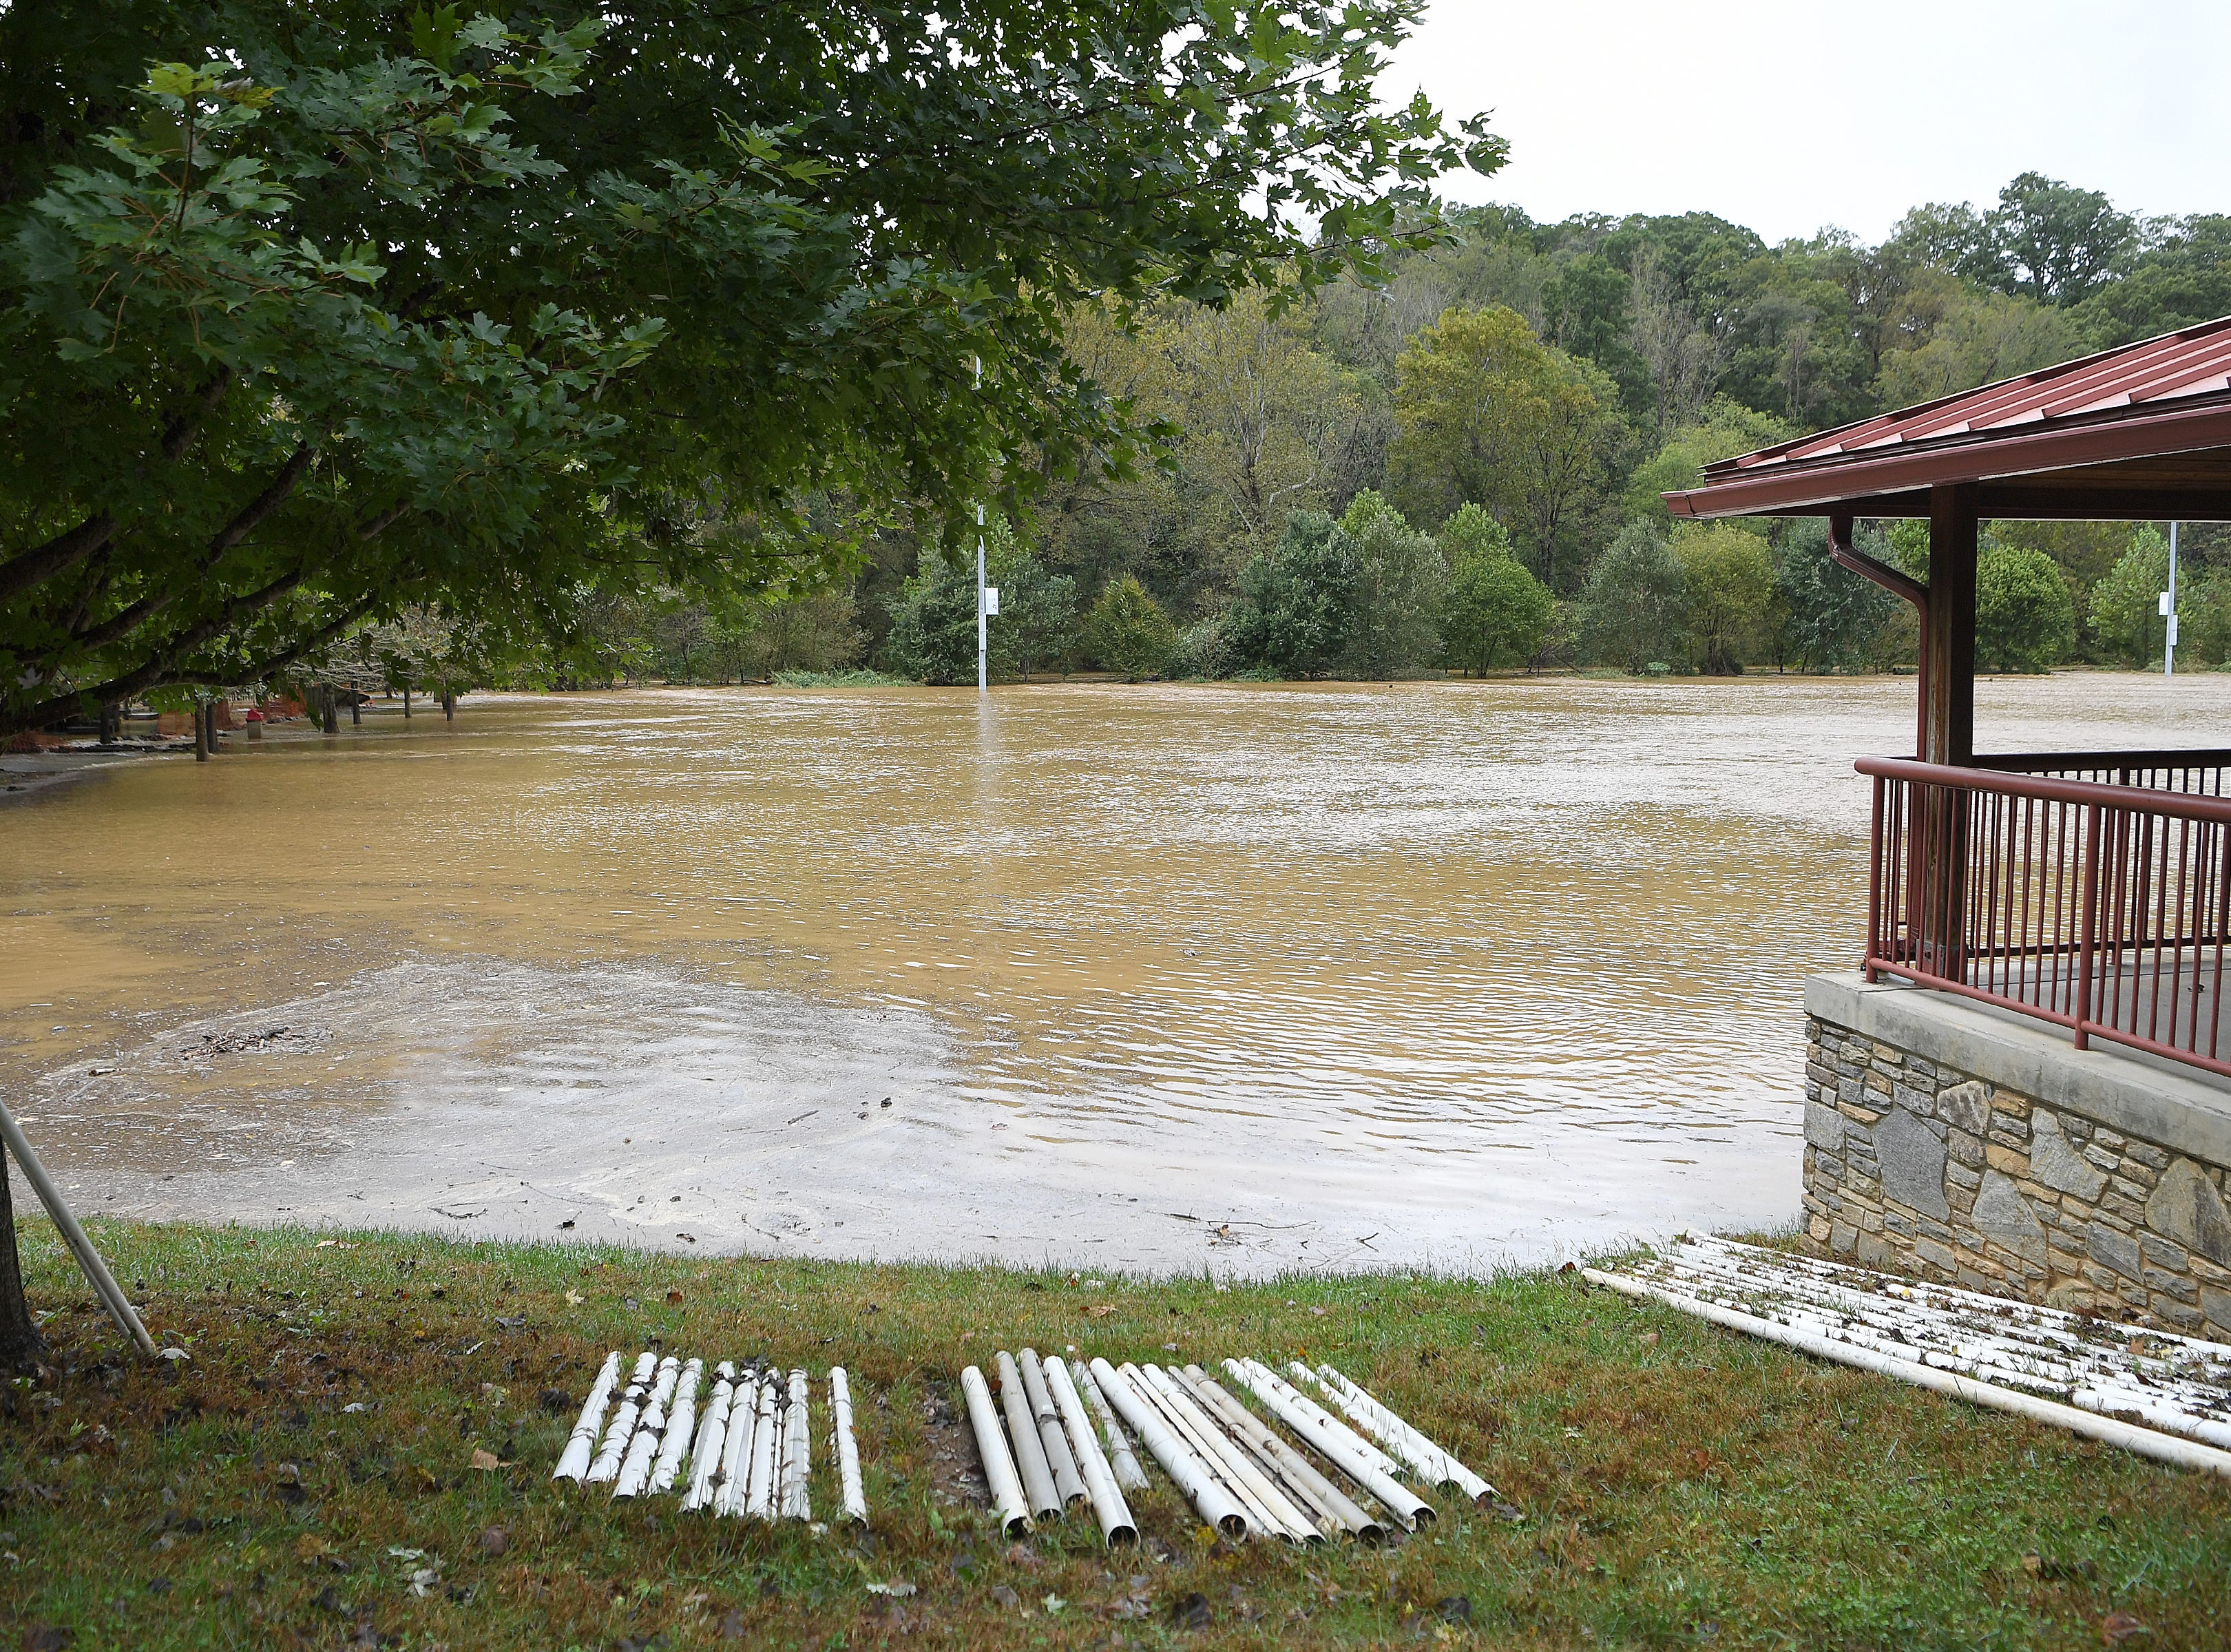 The John B. Lewis Soccer Complex is covered in water as the Swannanoa River floods because of rains from Hurricane Michael on Oct. 11, 2018.